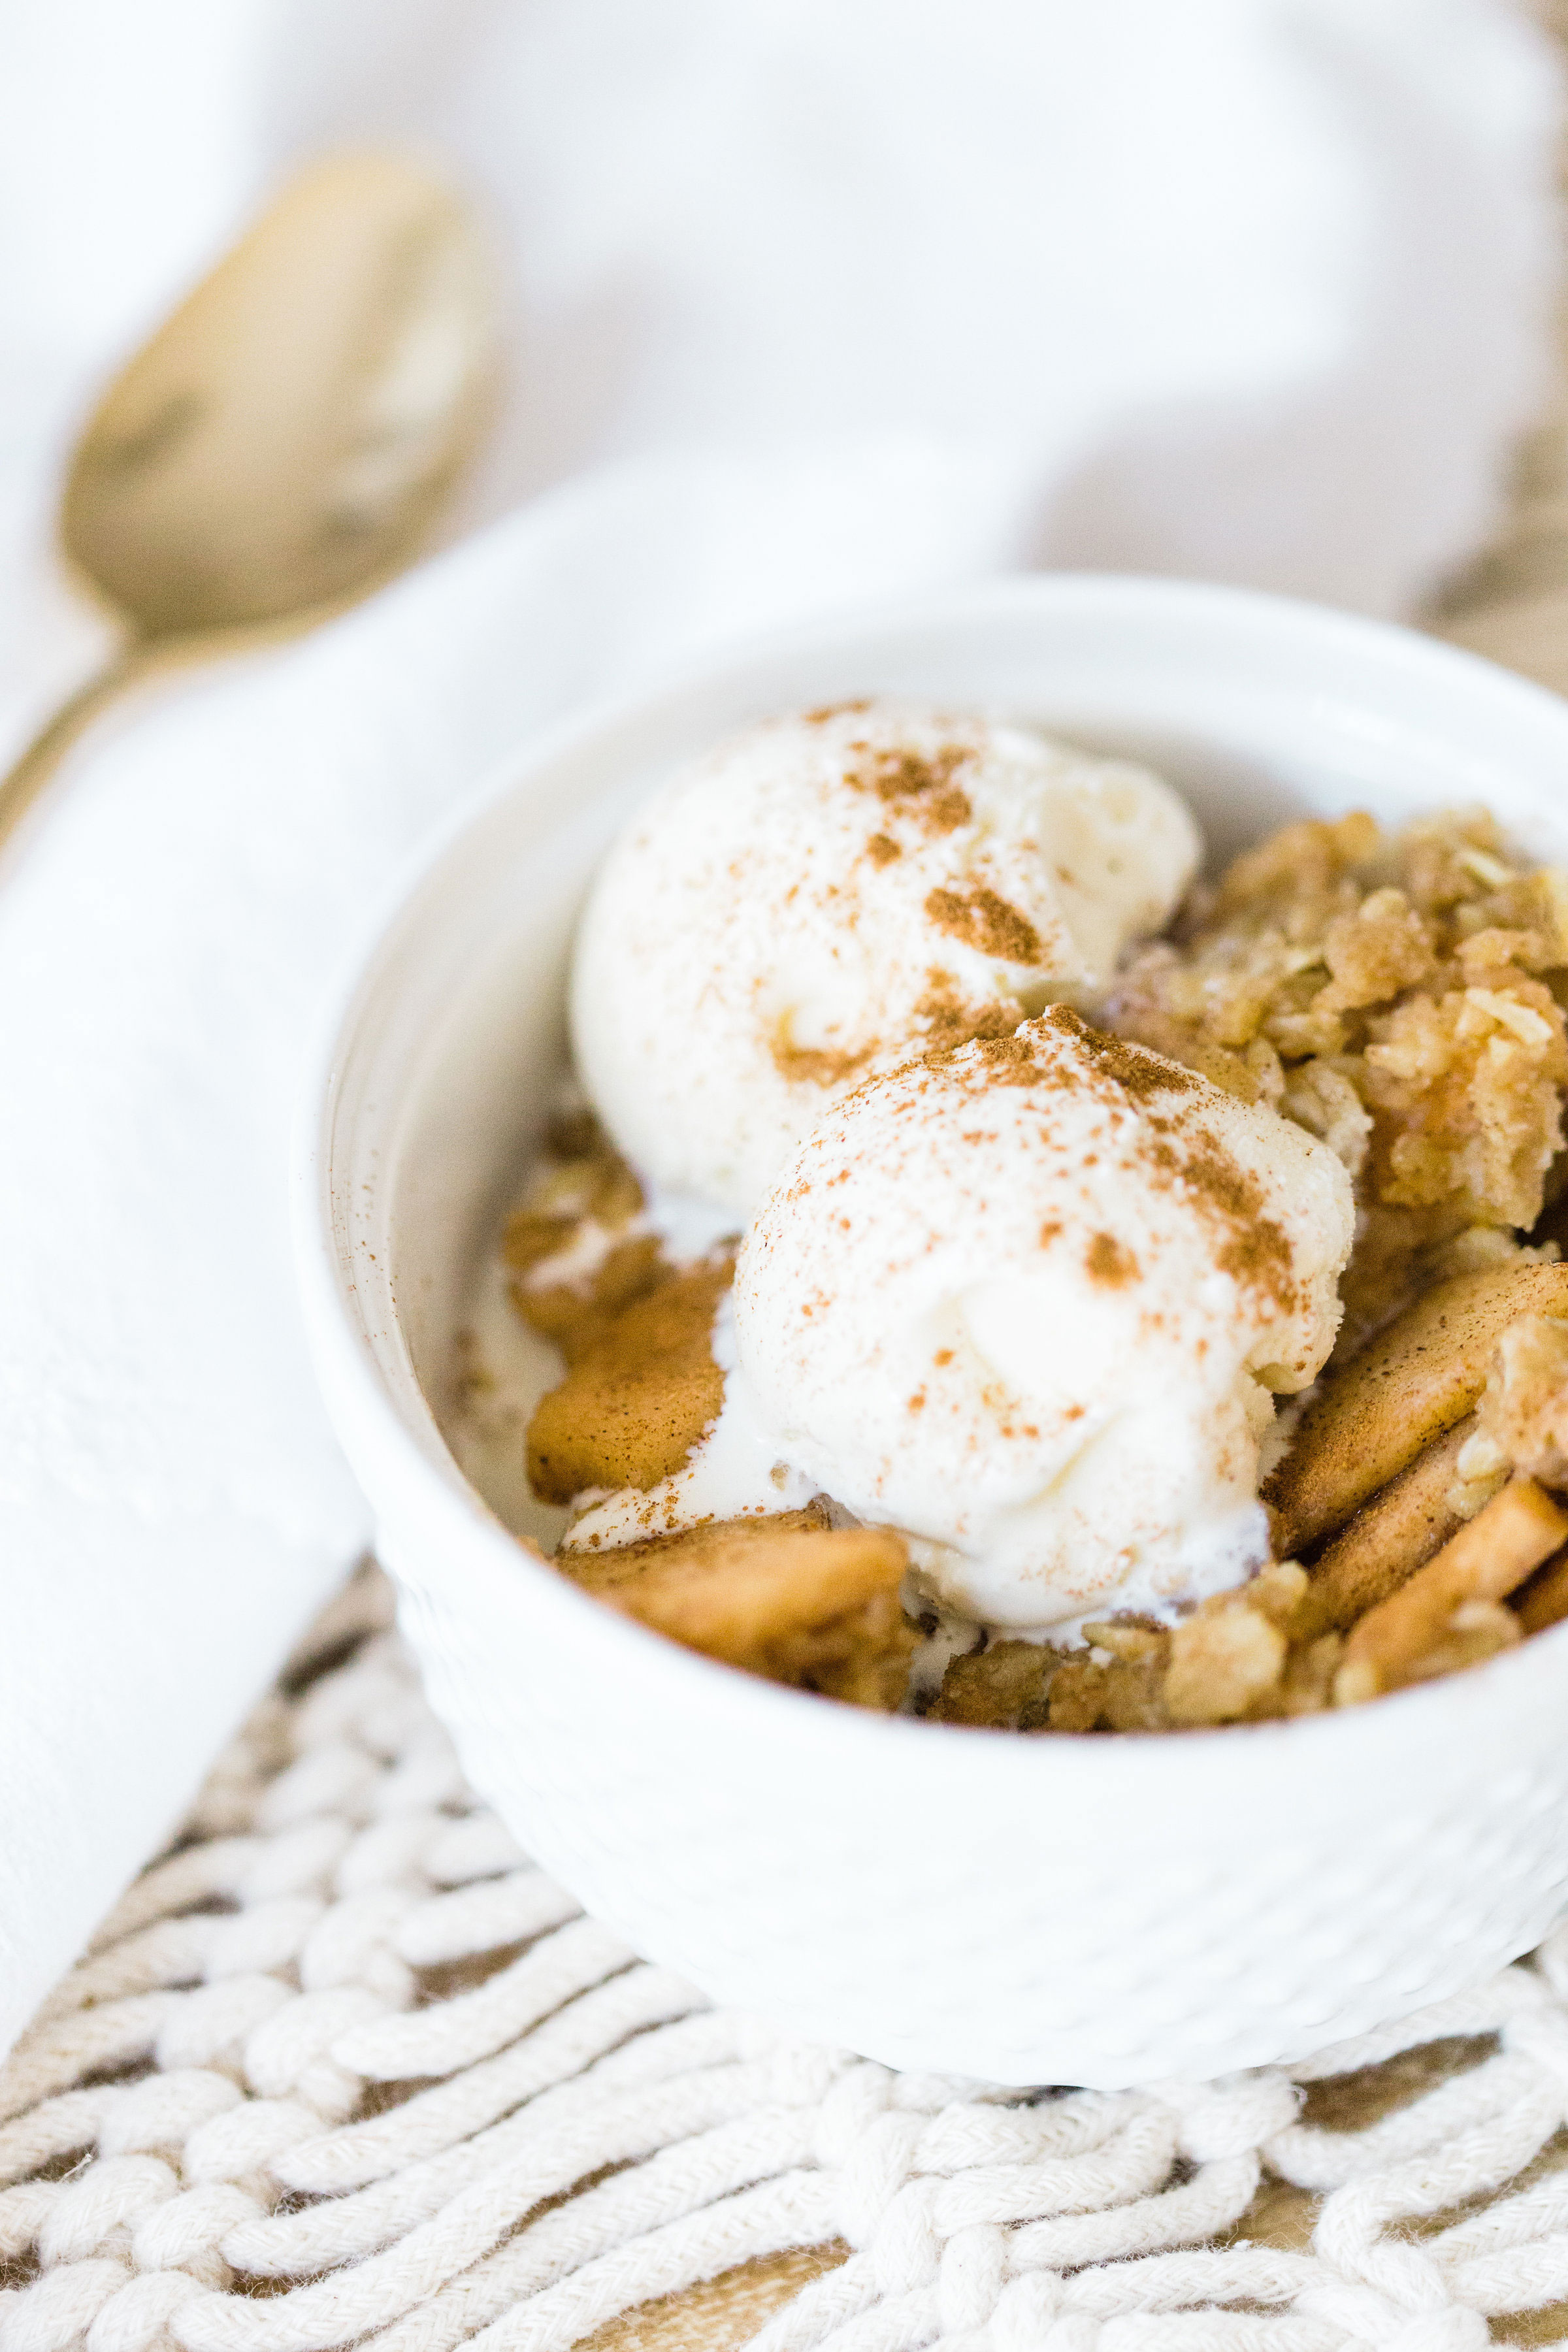 Foodie blogger Lexi of Glitter, Inc. shares how to make no-fuss slow cooker apple crisp, full of juicy apples, warm brown sugar, and a buttery crumbly topping. Click through for the recipe. | glitterinc.com | @glitterinc